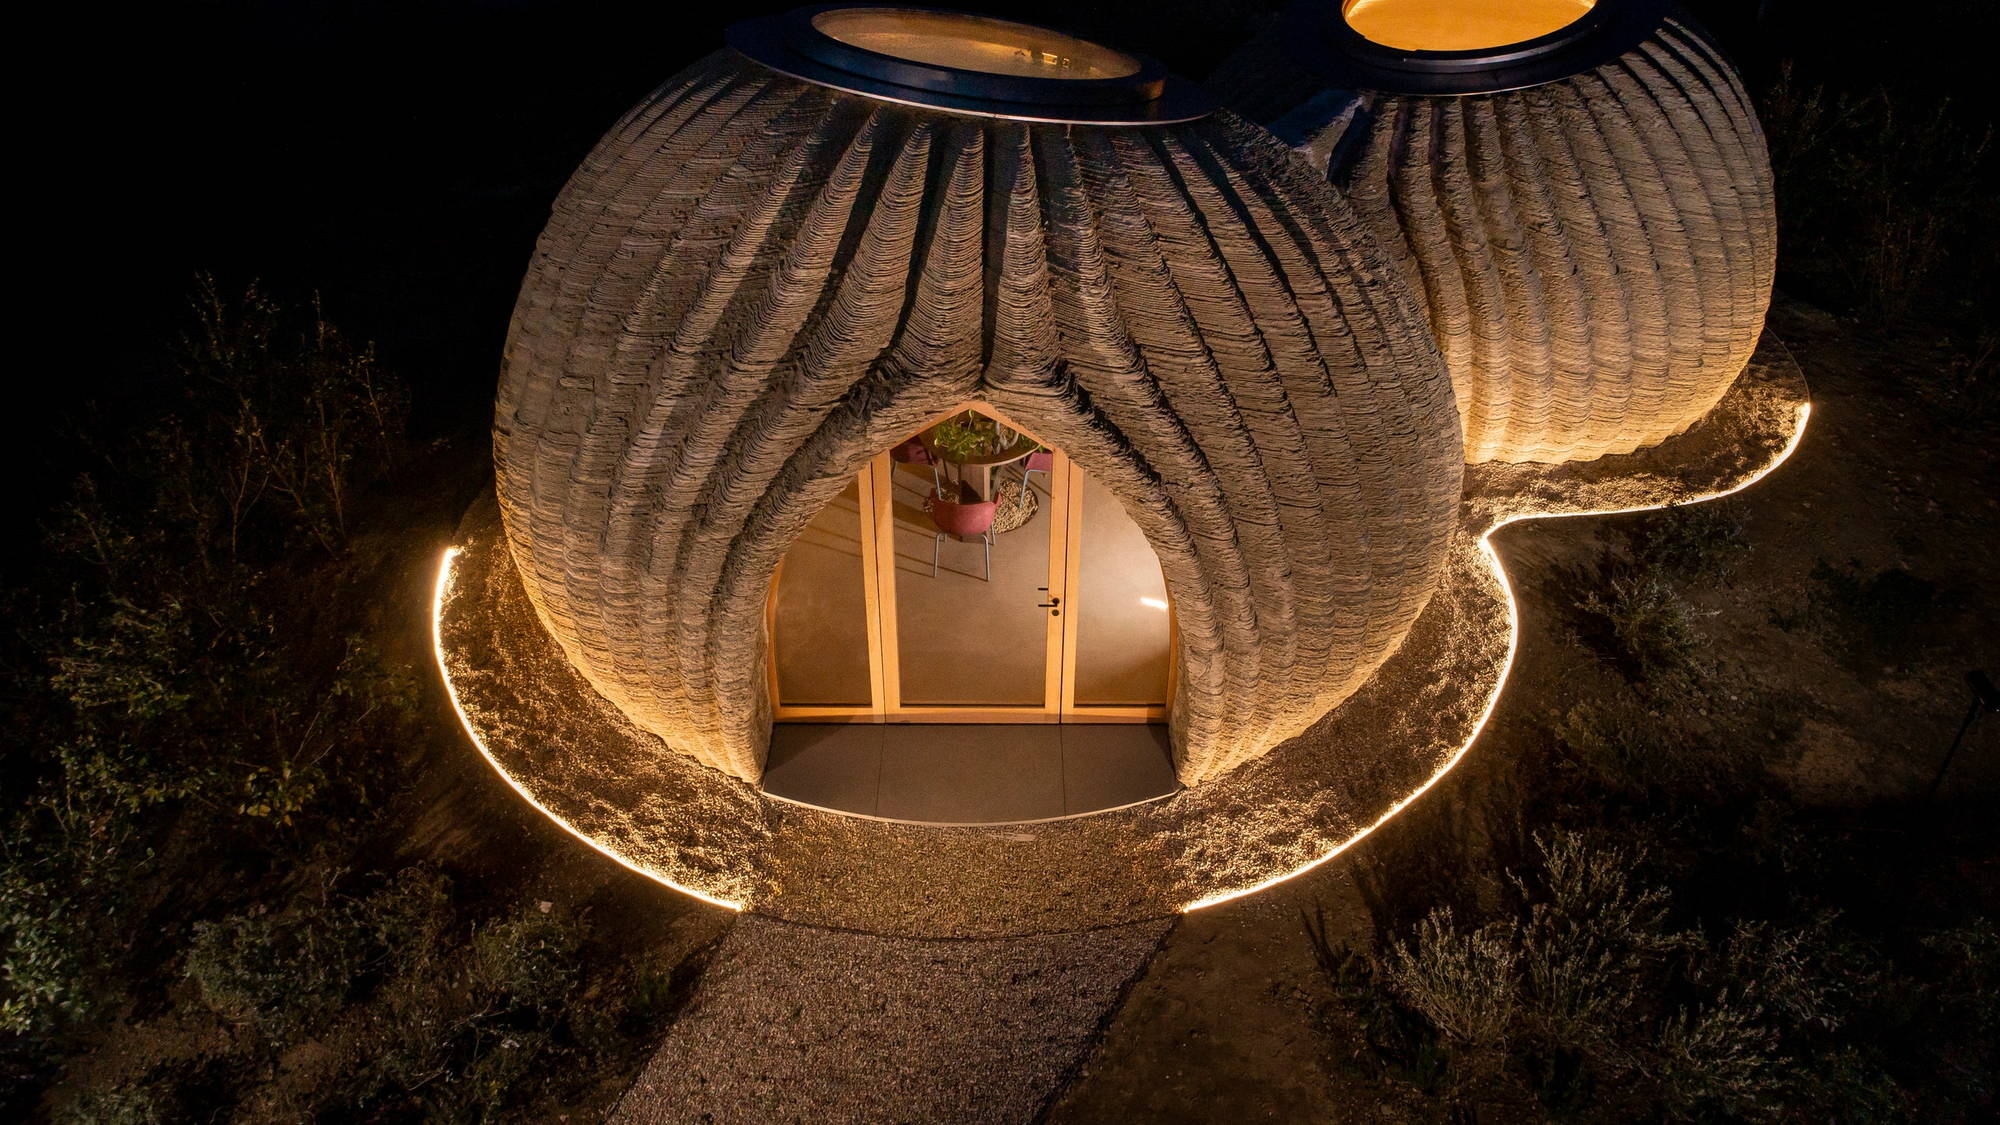 TECLA: A 3D-Printed Dome Home Made of Locally-Sourced Raw Earth